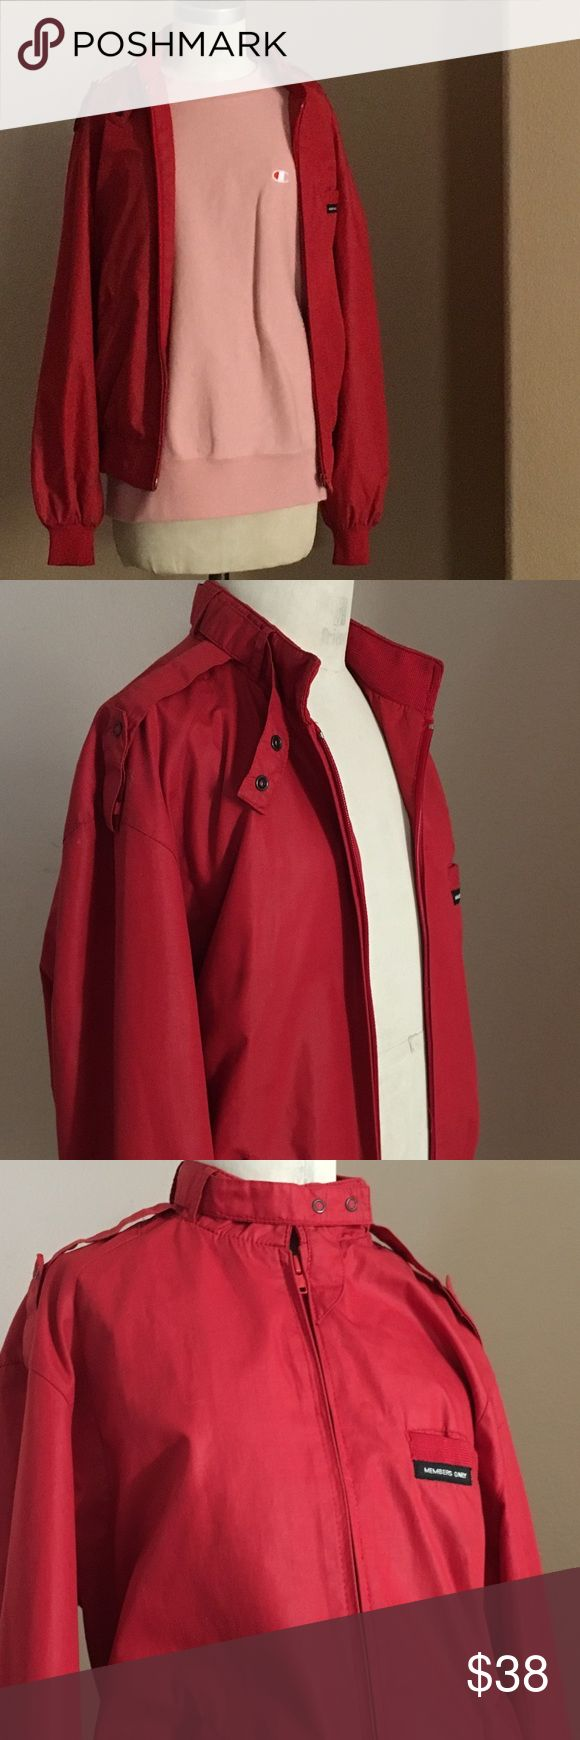 "cherry red members only moto mock neck jacket vtg dream jacket! marked a 9/10 fits like an XS, bust max 34"" length 20"" in fantastic condition with tiny ink spots on elbow (see photo)! and twin with the same sized white members only jacket also for sale! :) Opening Ceremony Jackets & Coats"